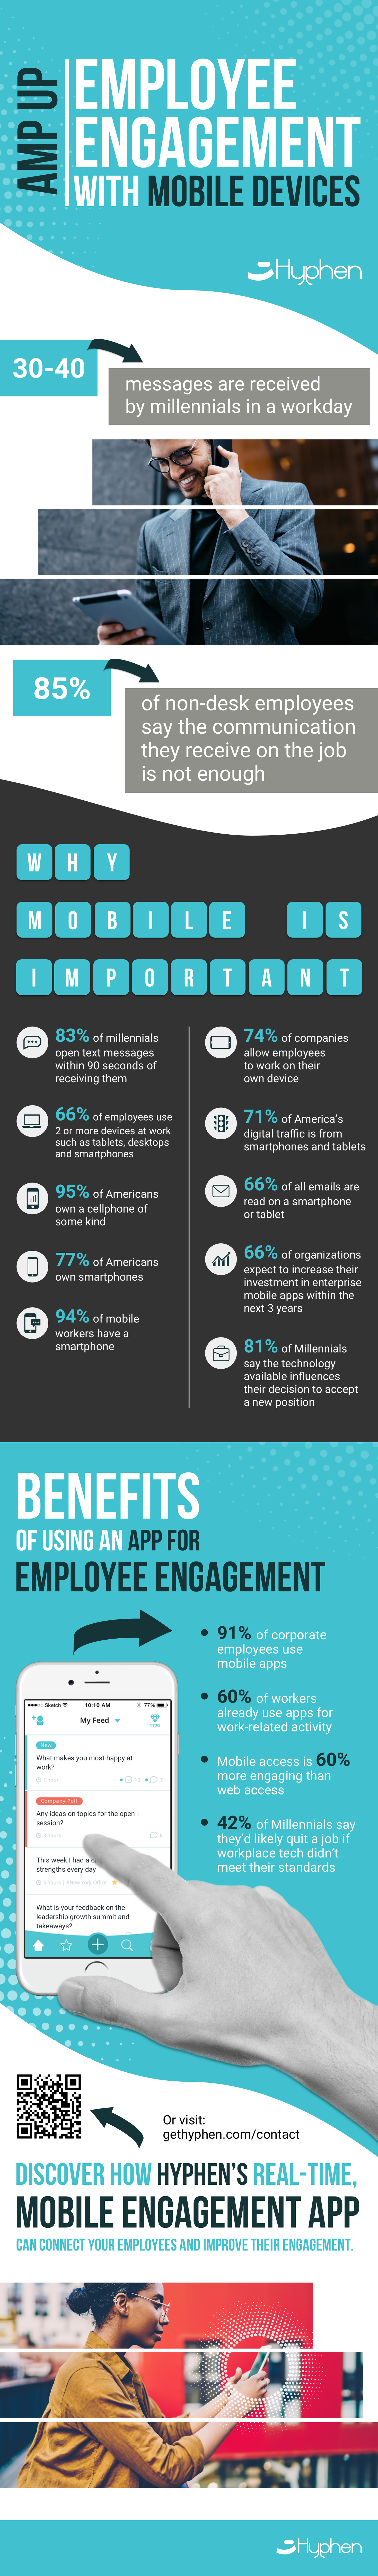 Hyphen Employee Engagement infographic